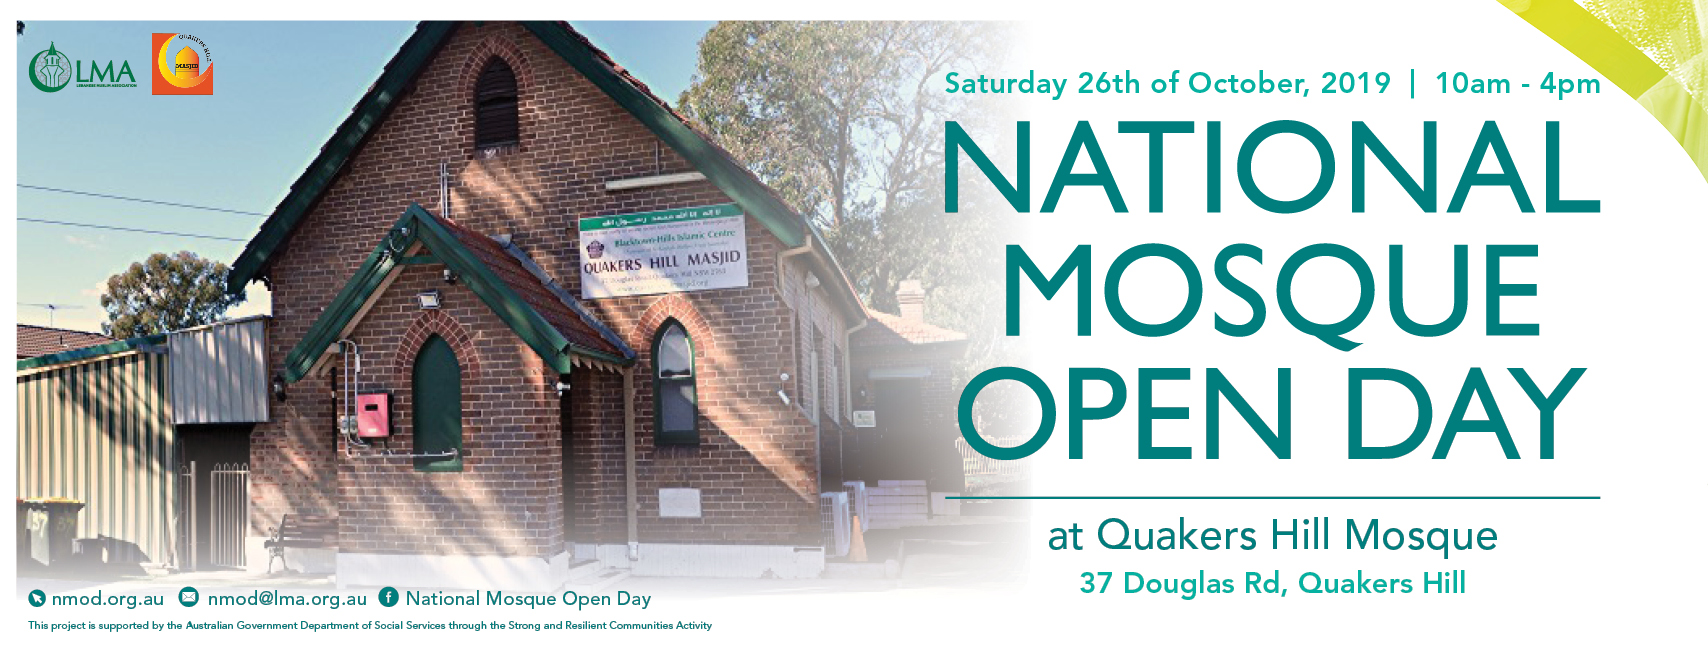 Quakers Hill Mosque Open Day